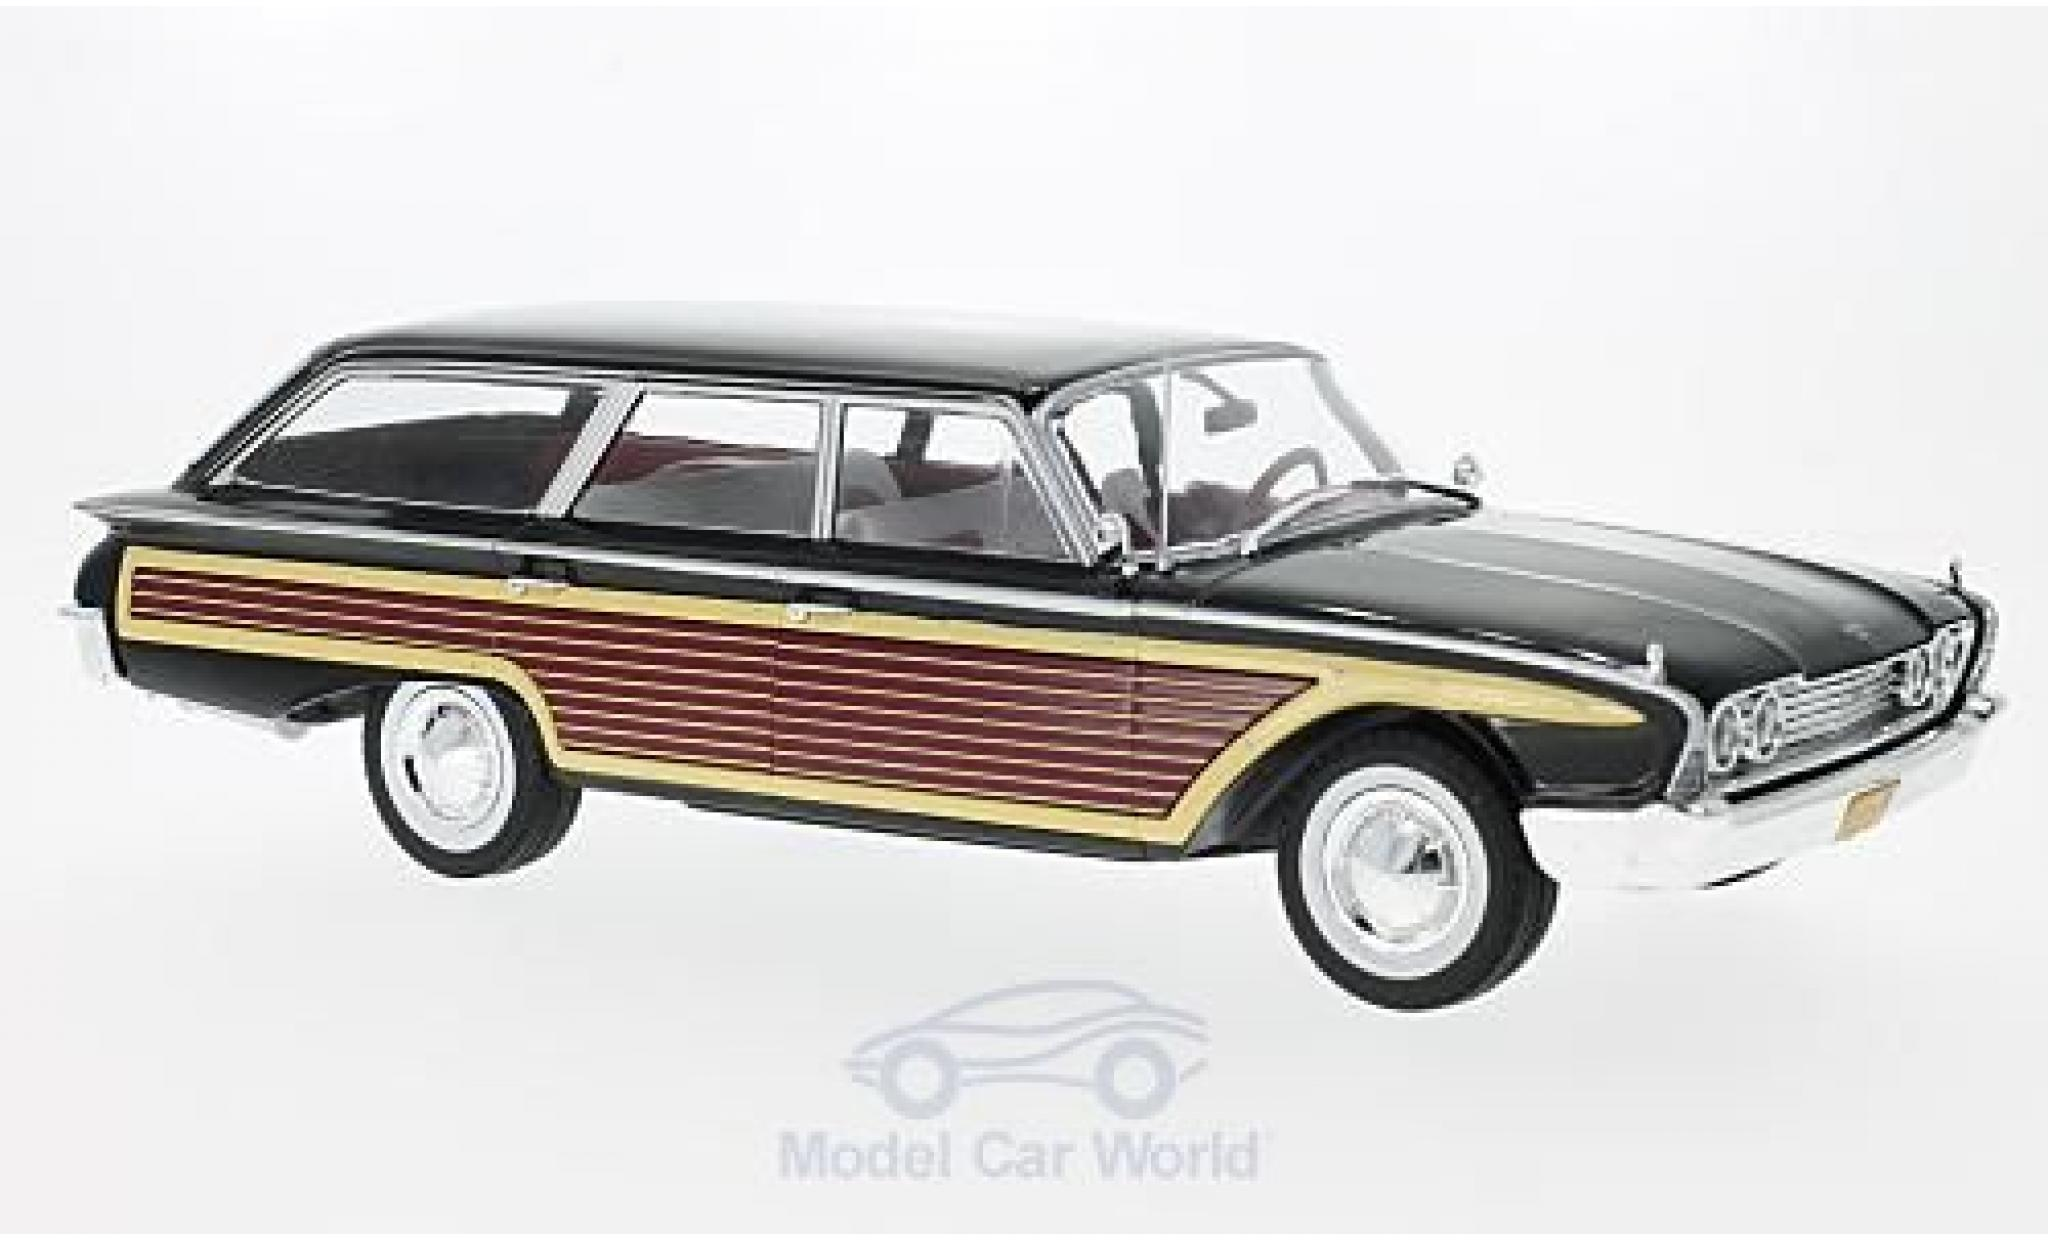 Ford Country Squire 1/18 MCG noire/Holzoptik 1960 ohne Dachreling